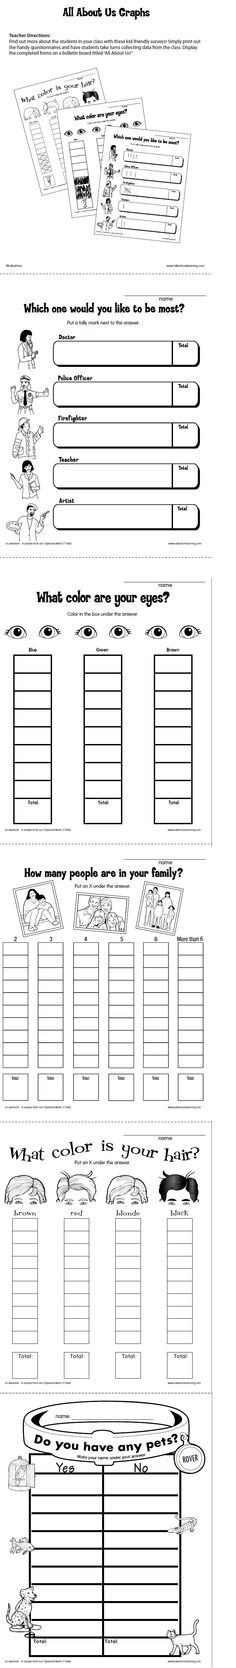 All About Us Graphs from Lakeshore Learning: Find out more about the children in your class with these kid-friendly surveys!